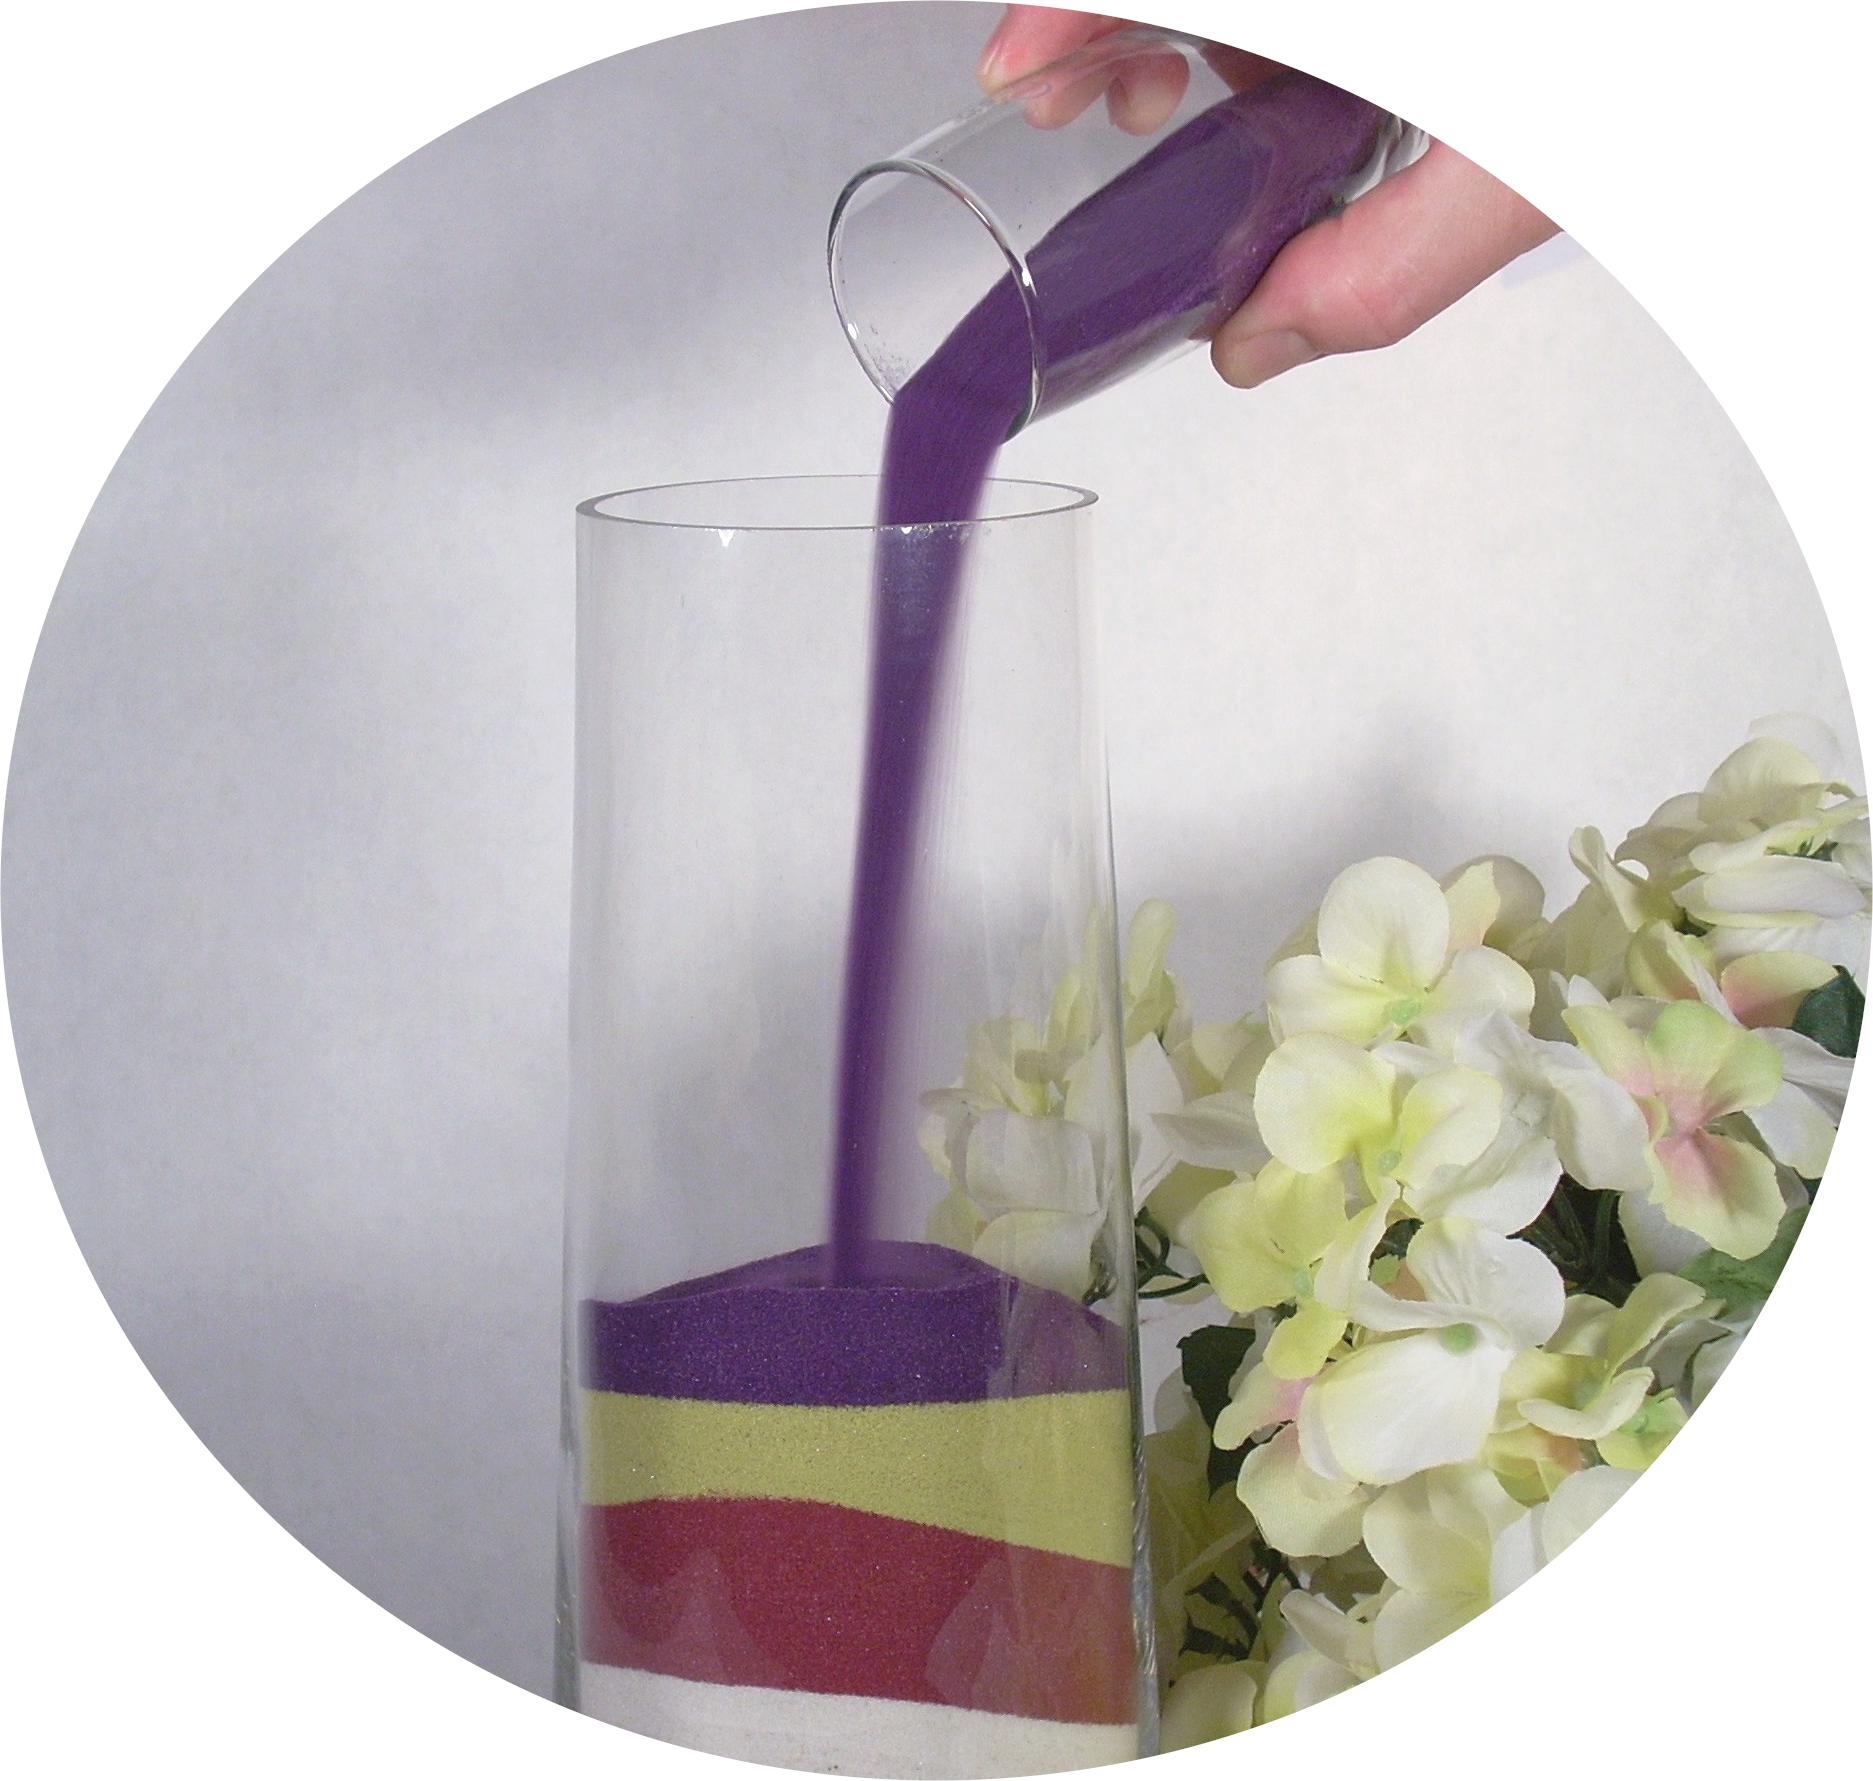 2 unique sand vase home idea exciting new unity sand tribute kit now available for weddings reviewsmspy